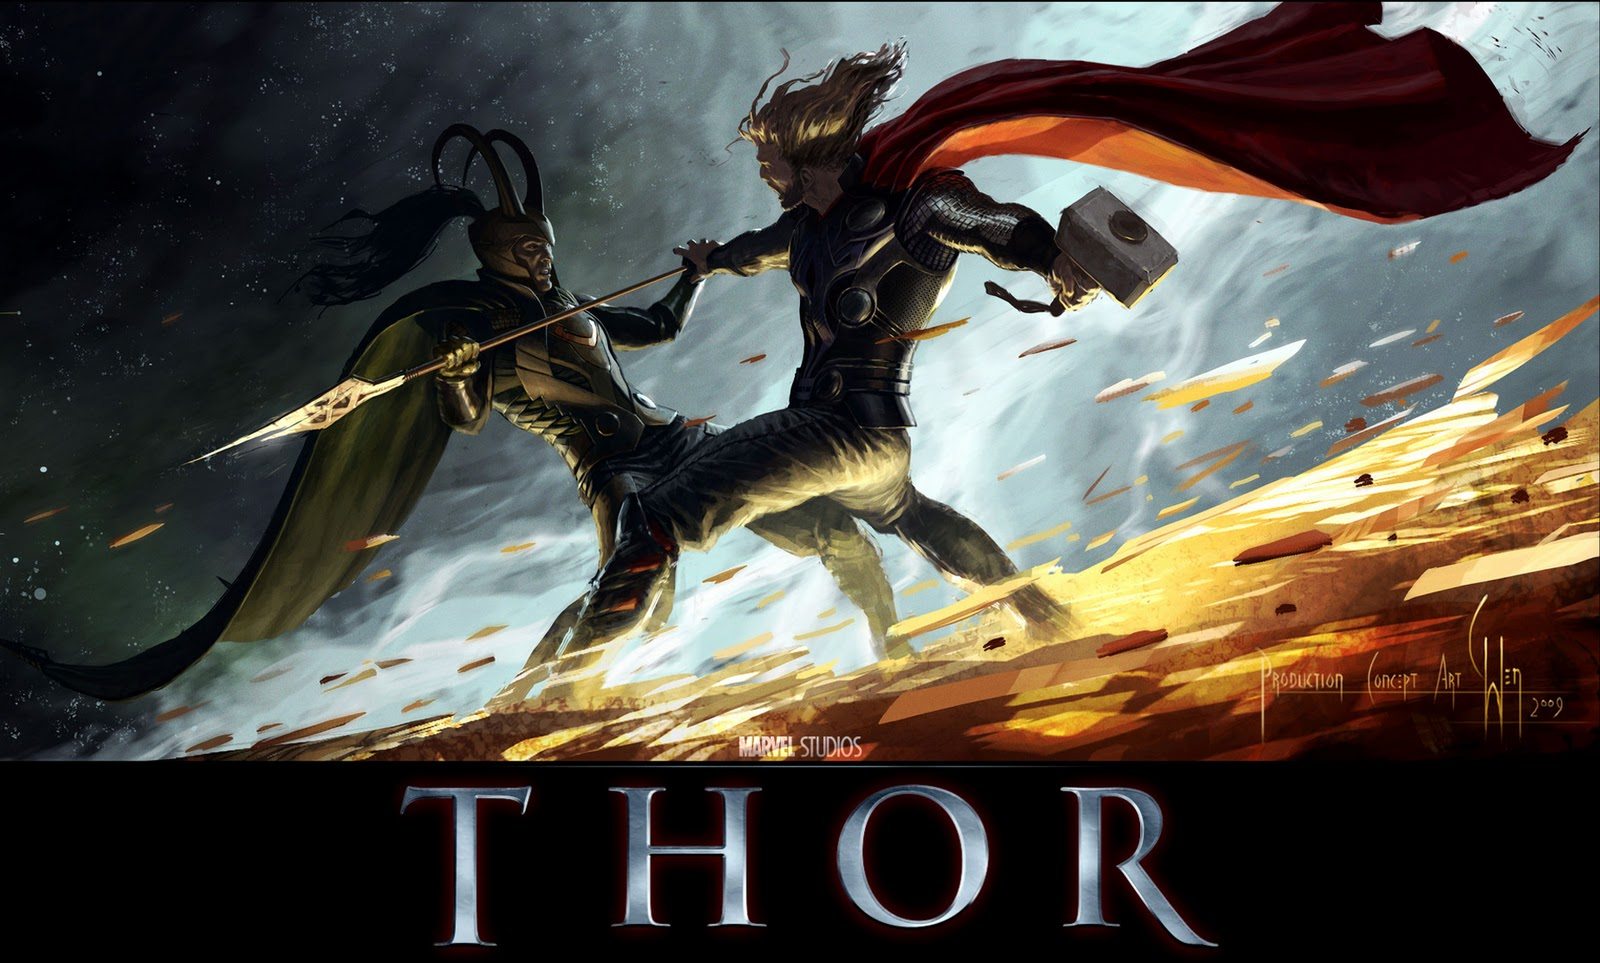 http://4.bp.blogspot.com/_5Orquk9DySo/TOXU0AfrUsI/AAAAAAAAAy4/XVsmuclSoB8/s1600/Thor-Movie-2011-Wallpapers-6.jpg